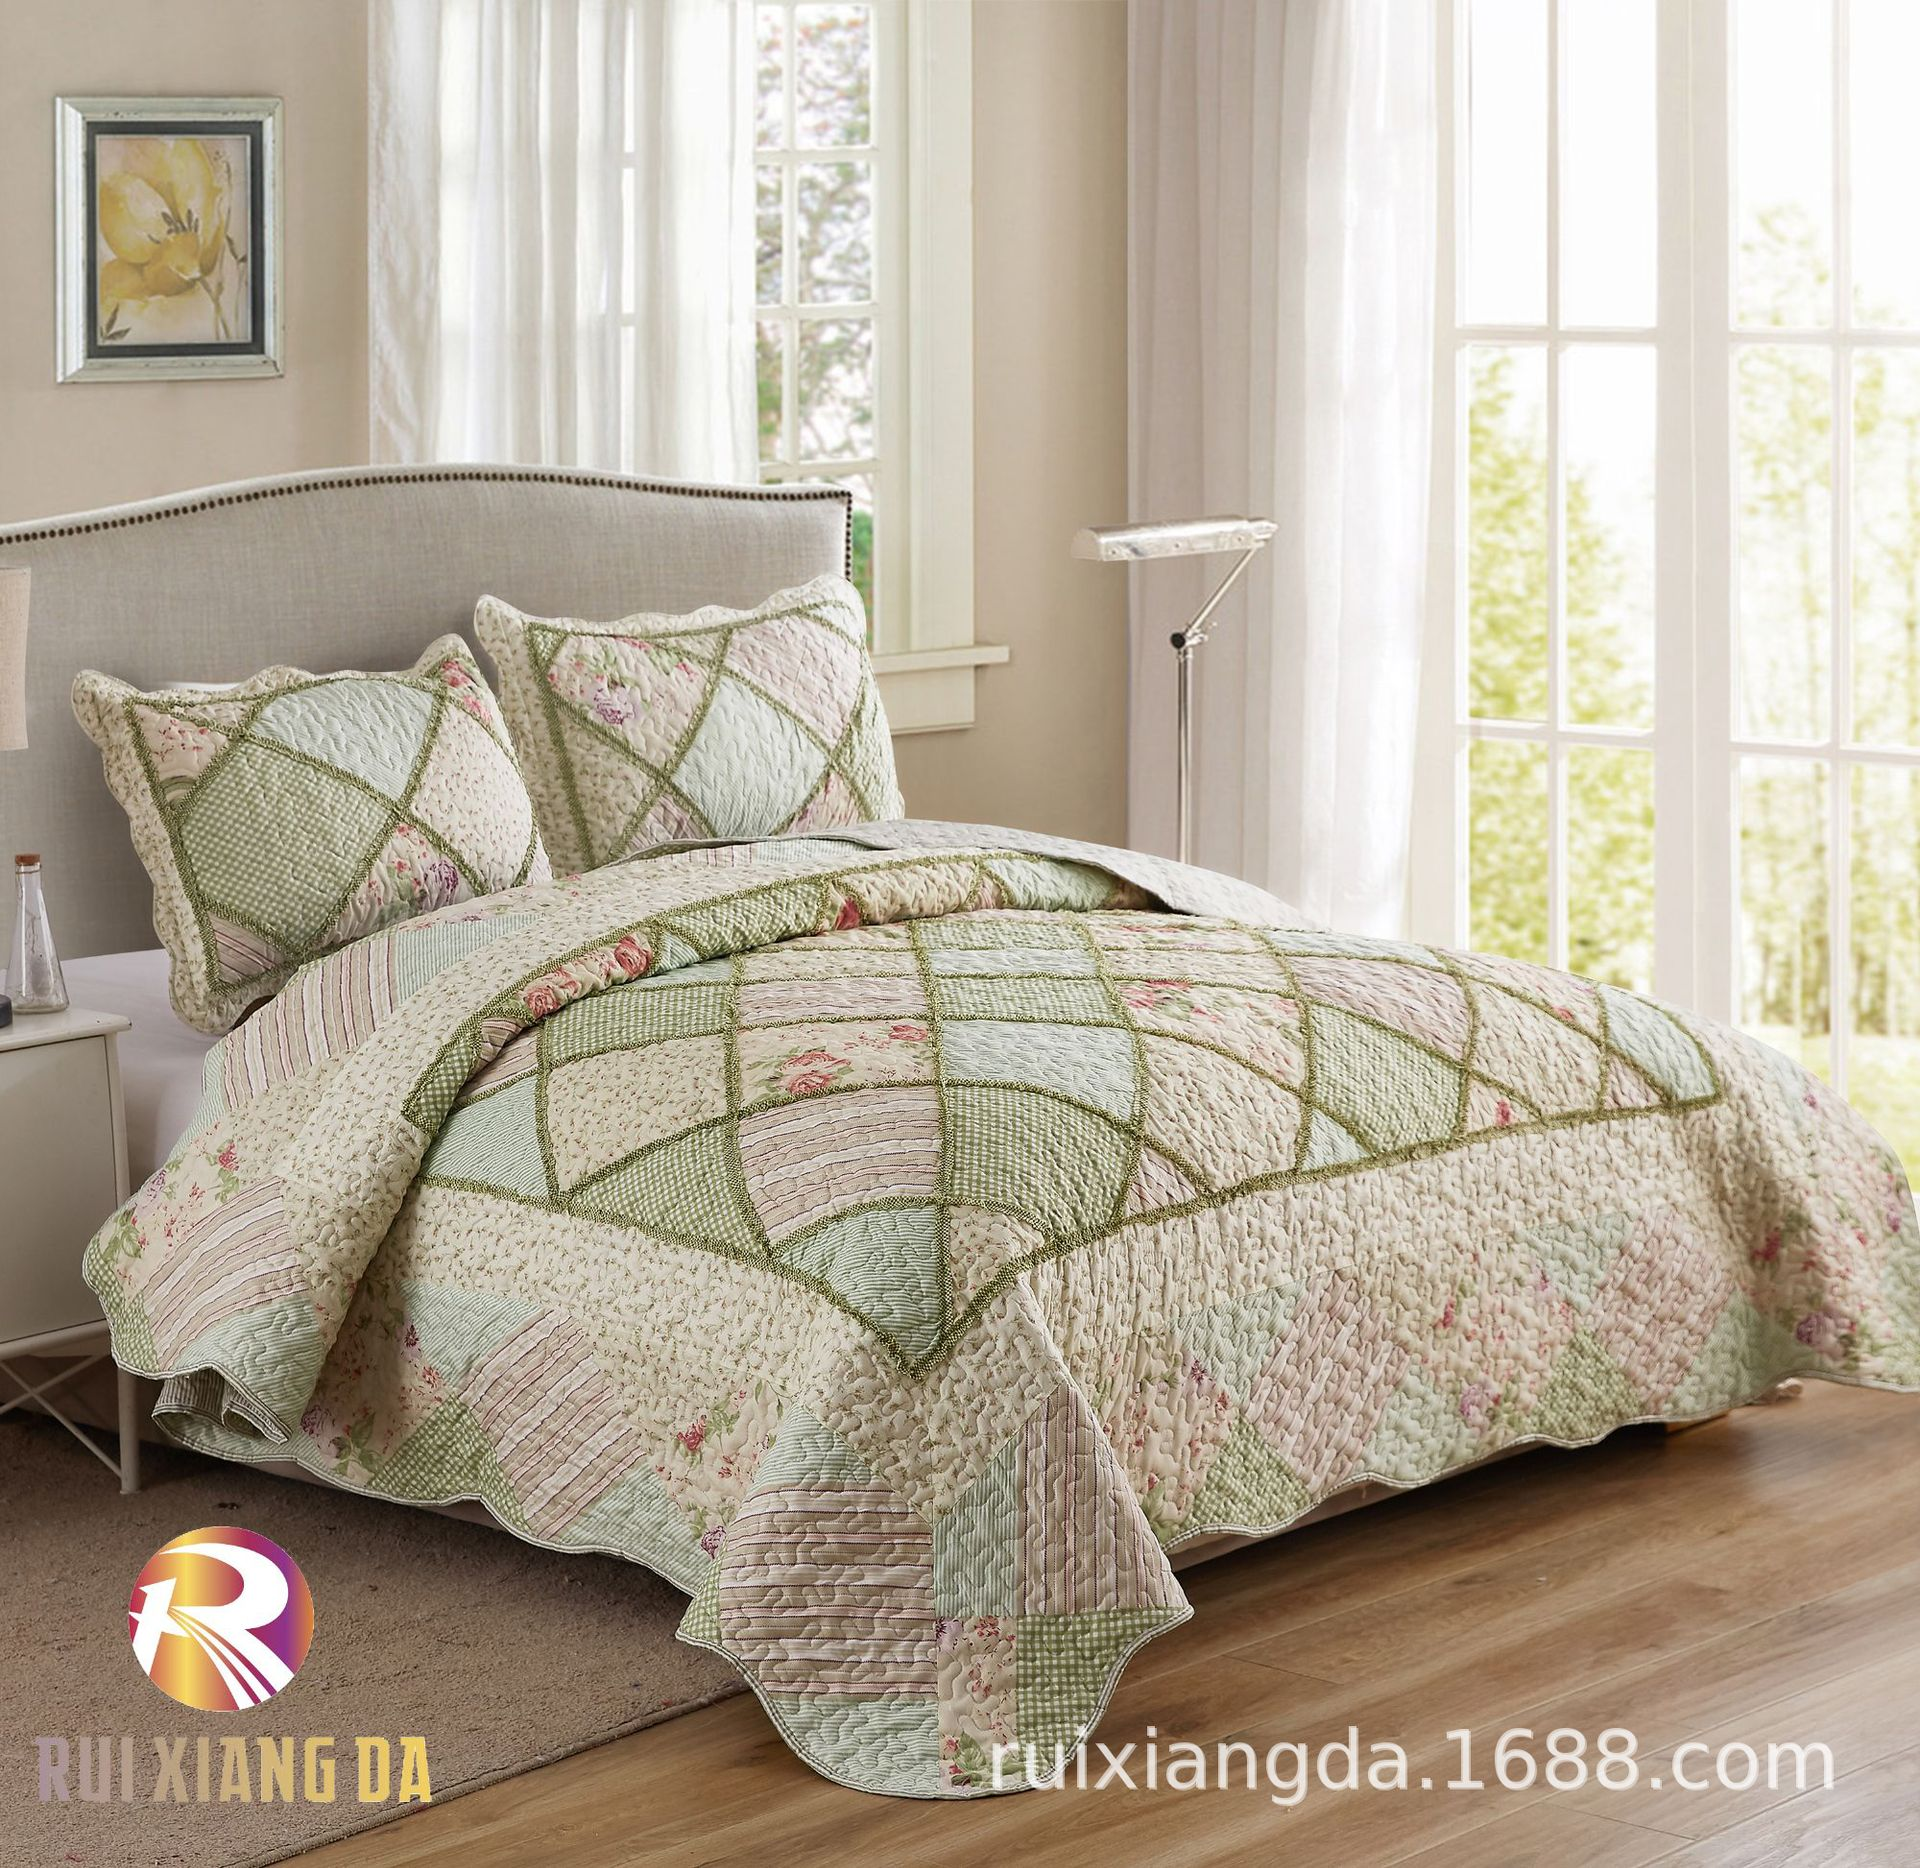 Comfy Patterned Bed Sheets for Styling Your Bedroom